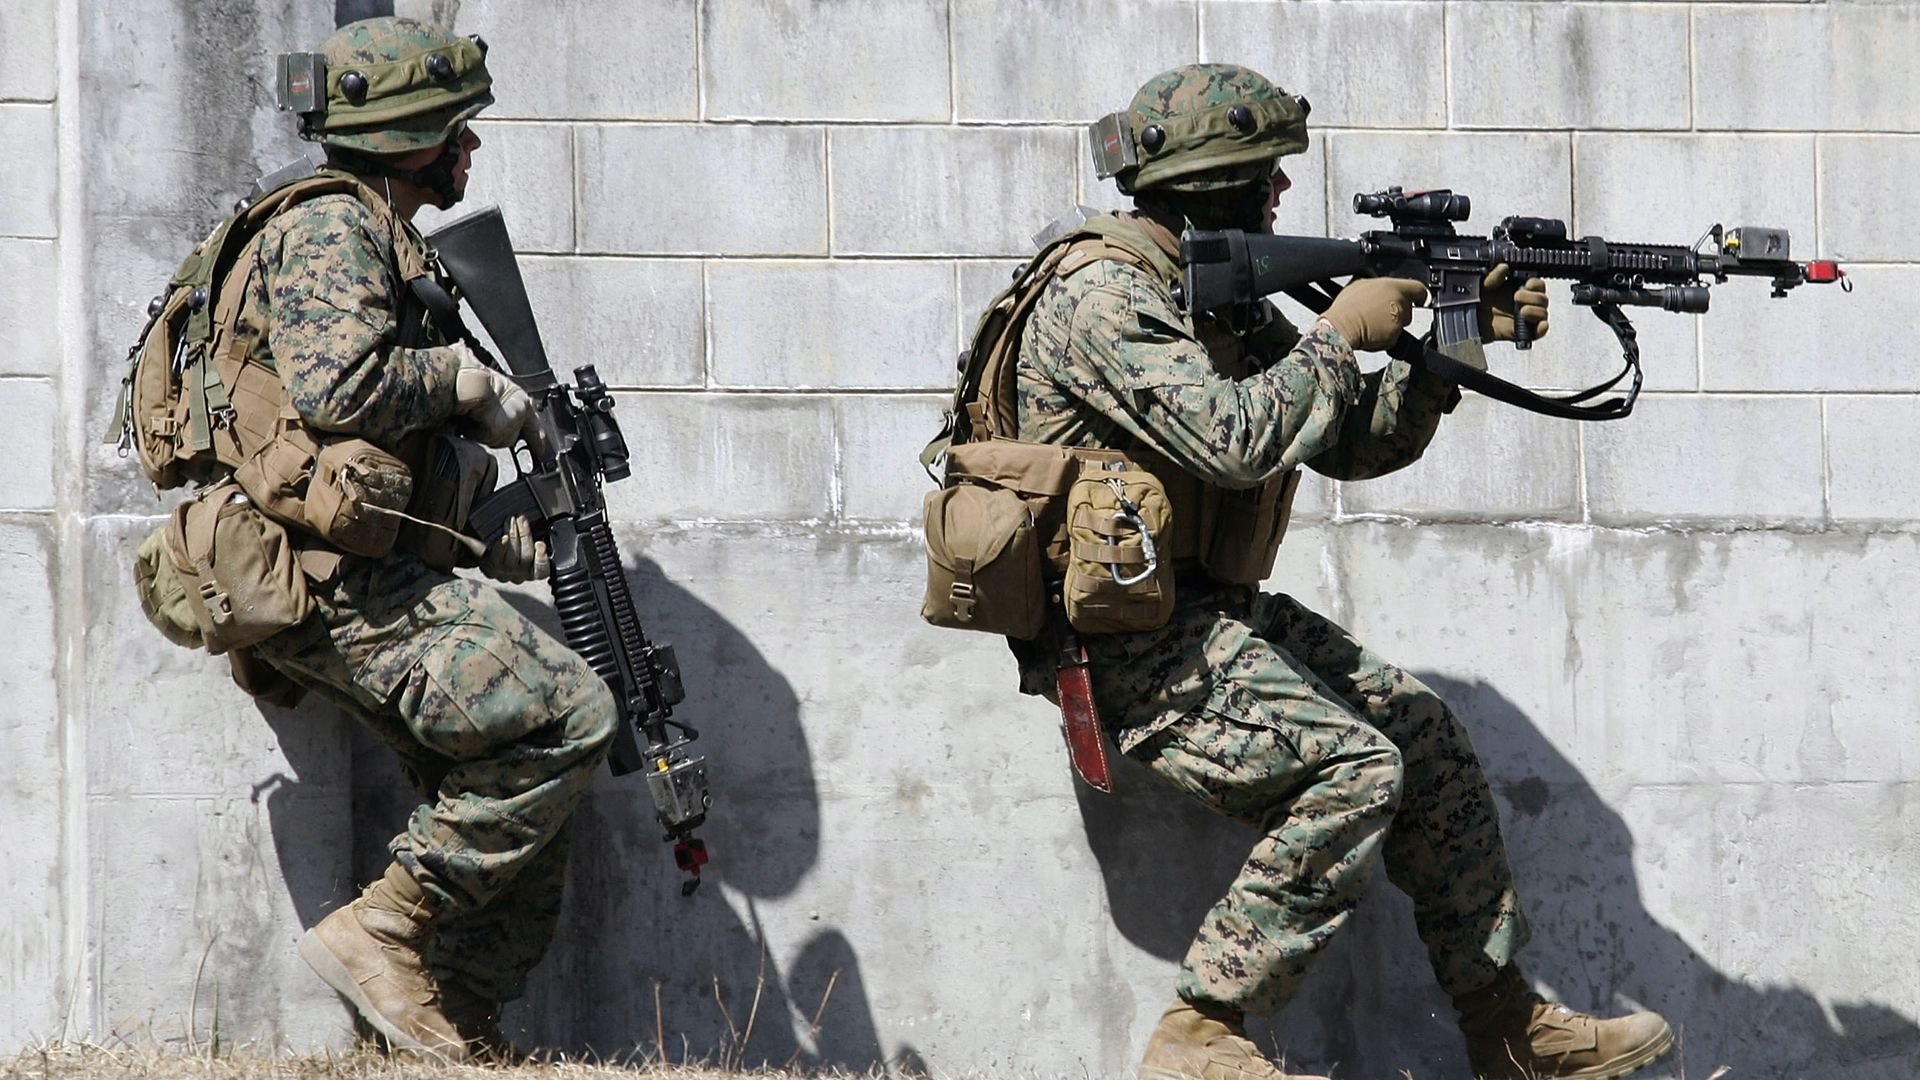 U.S Marine Corps officers participate in military exercise.